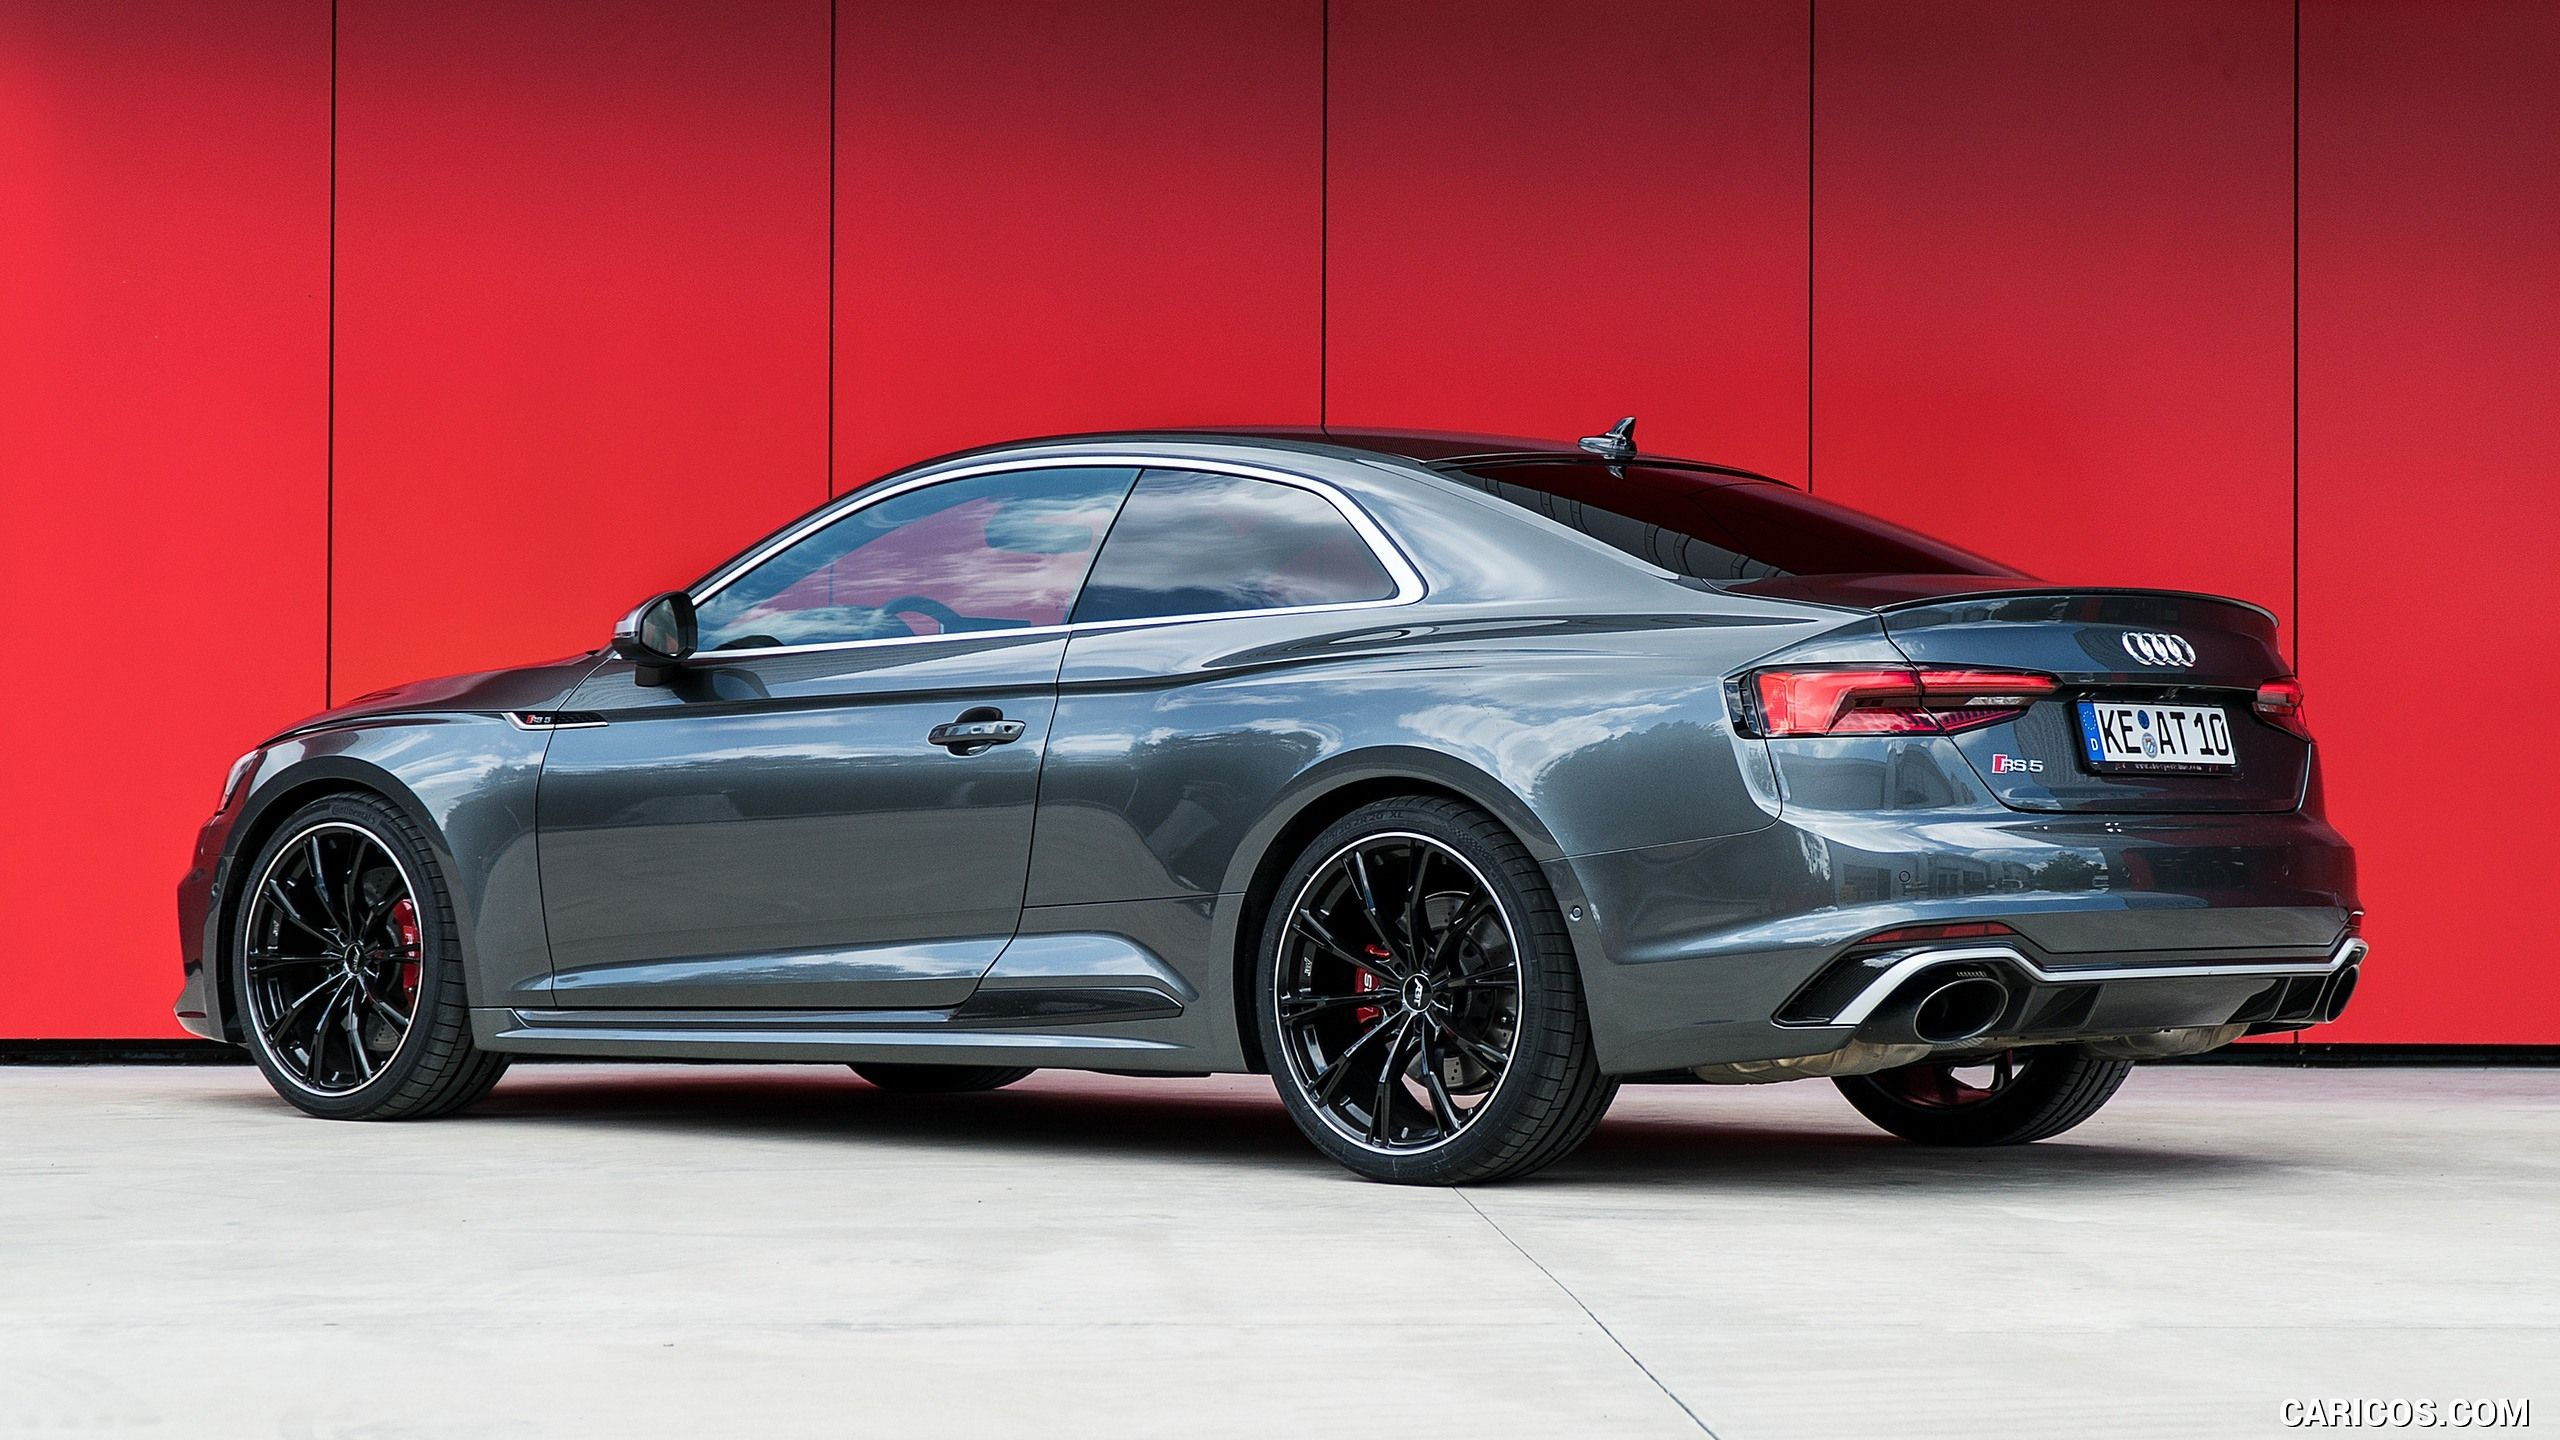 2019 Audi Rs5 Coupe Sport Release Date Price And Review Audi Rs5 Audi Audi Rs8